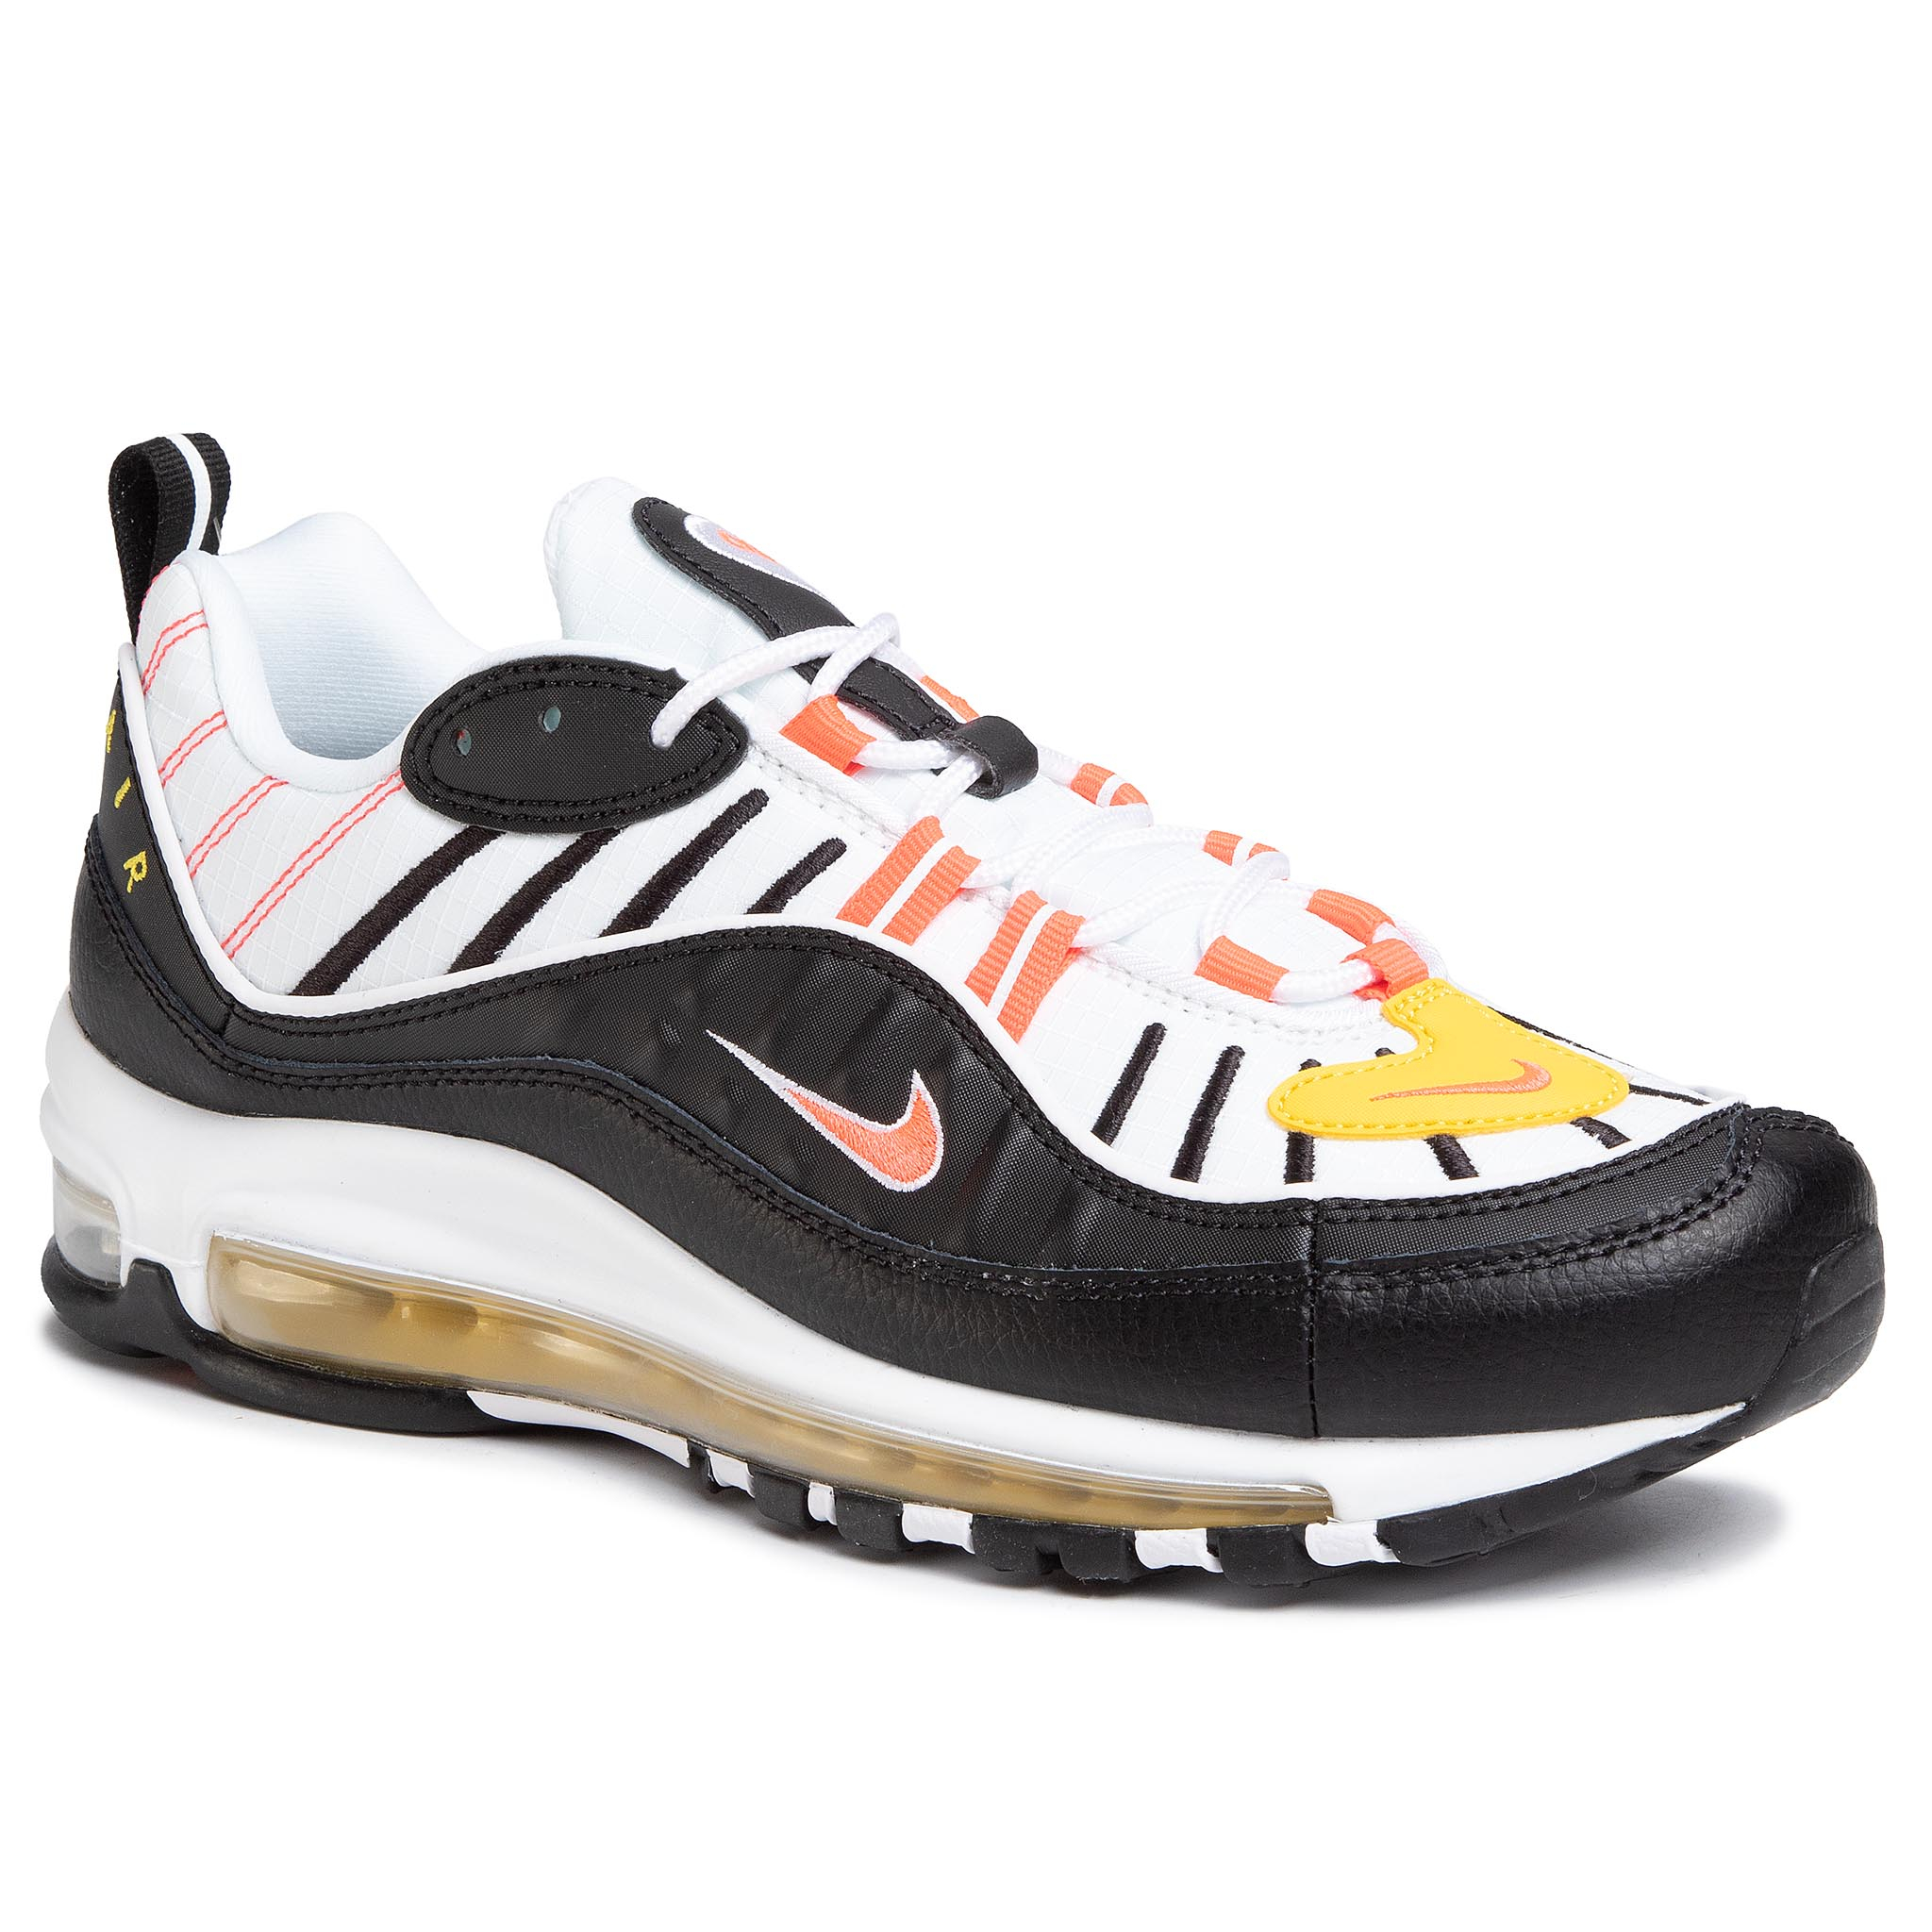 Sneaker Nike Zapatos NIKE - Air Max 98 640744 016 Black/Bright Crimson/White